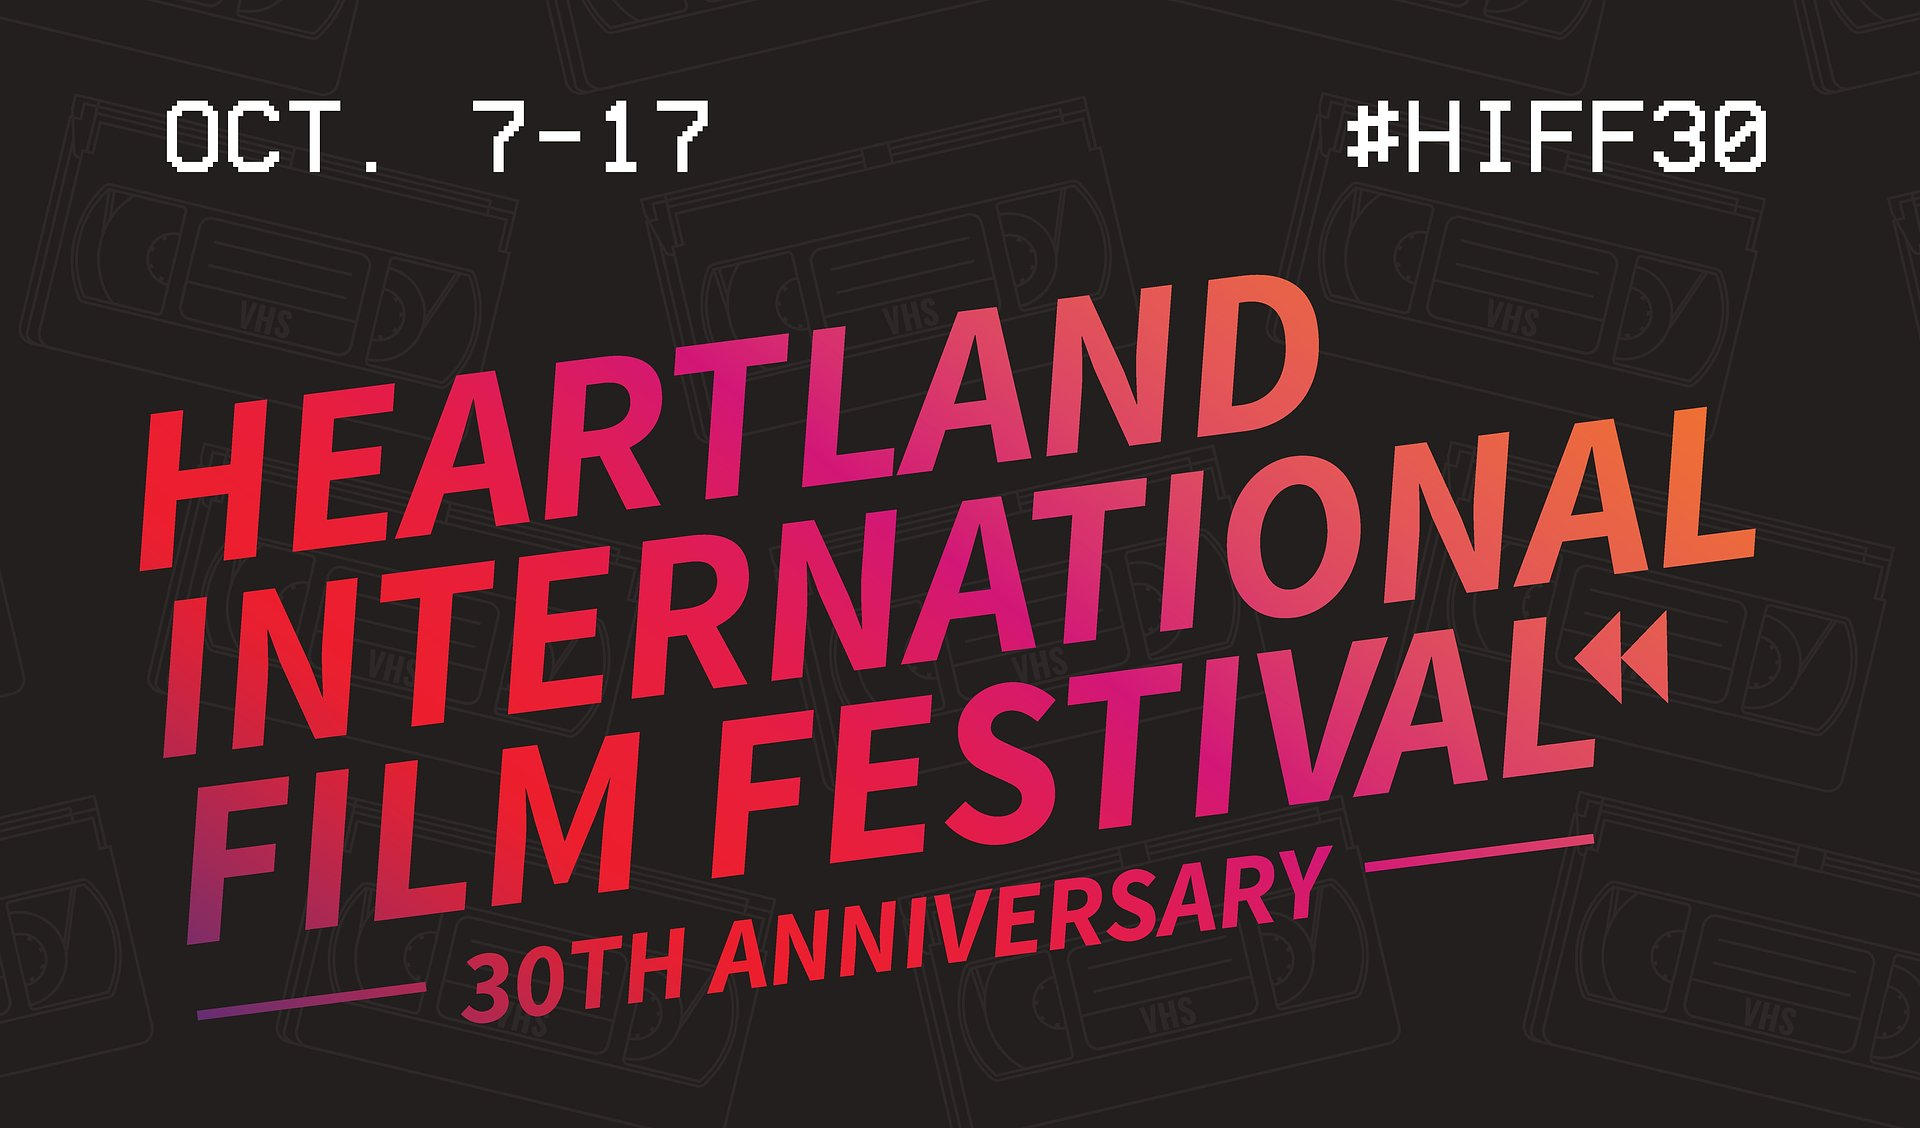 """HEARTLAND INTERNATIONAL FILM FESTIVAL ANNOUNCES FULL LINEUP FOR 30TH ANNIVERSARY, NEW EVENT TITLES INCLUDE ANNIVERSARY GALA ADVANCE SCREENING OF """"KING RICHARD"""" IN ADDITION TO """"C'MON C'MON,"""" """"SPENCER,"""" """"THE FRENCH DISPATCH,"""" """"THE POWER OF THE DOG,"""" """"BELFAST,"""" AND """"THE HAND OF GOD"""""""